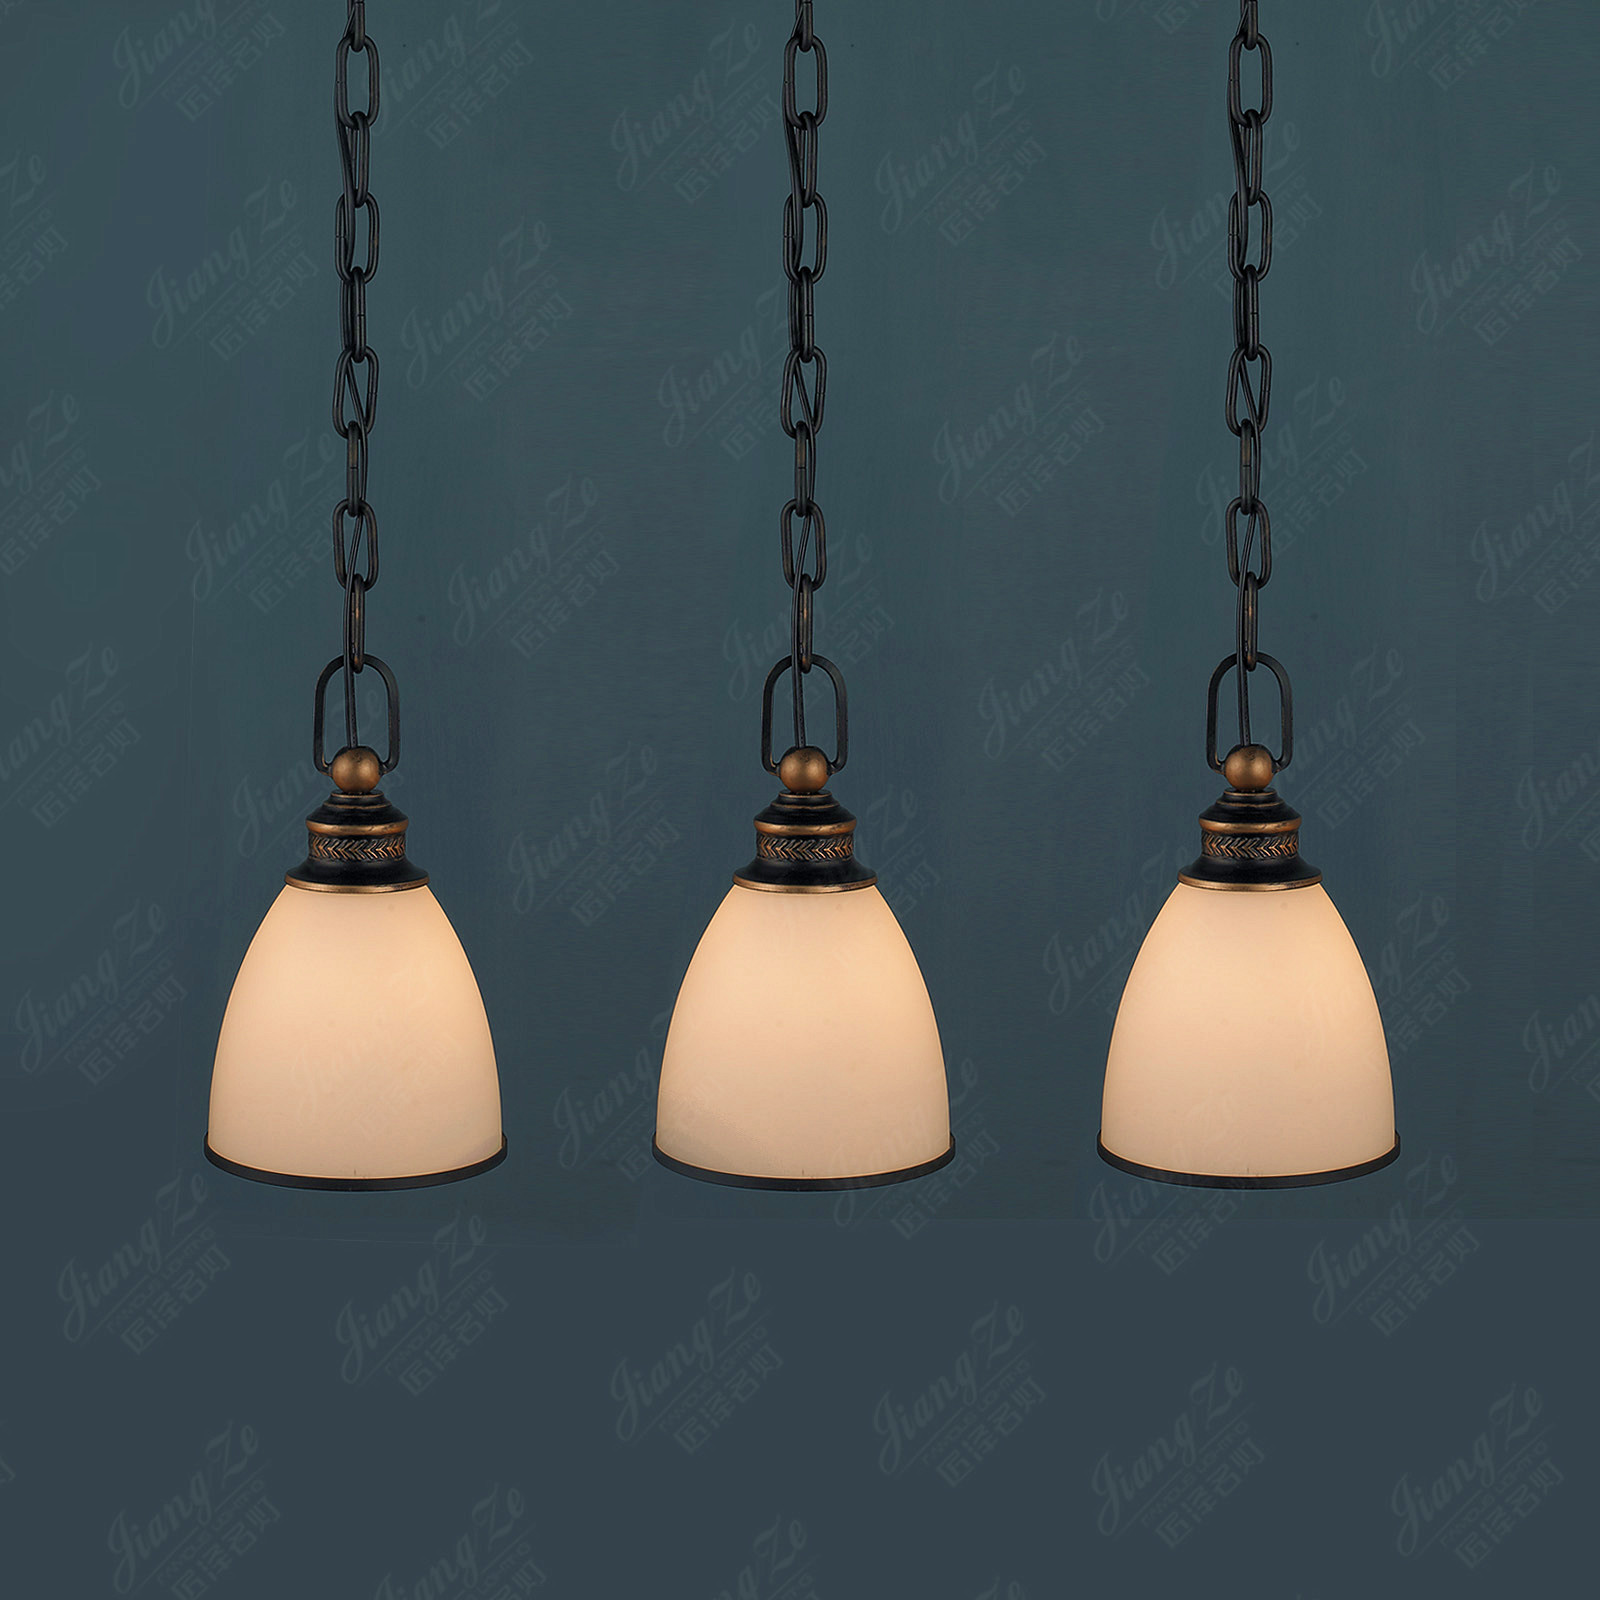 Pendant Bar Lighting Lamp American Style Pendant Light Bar Clothing Mini